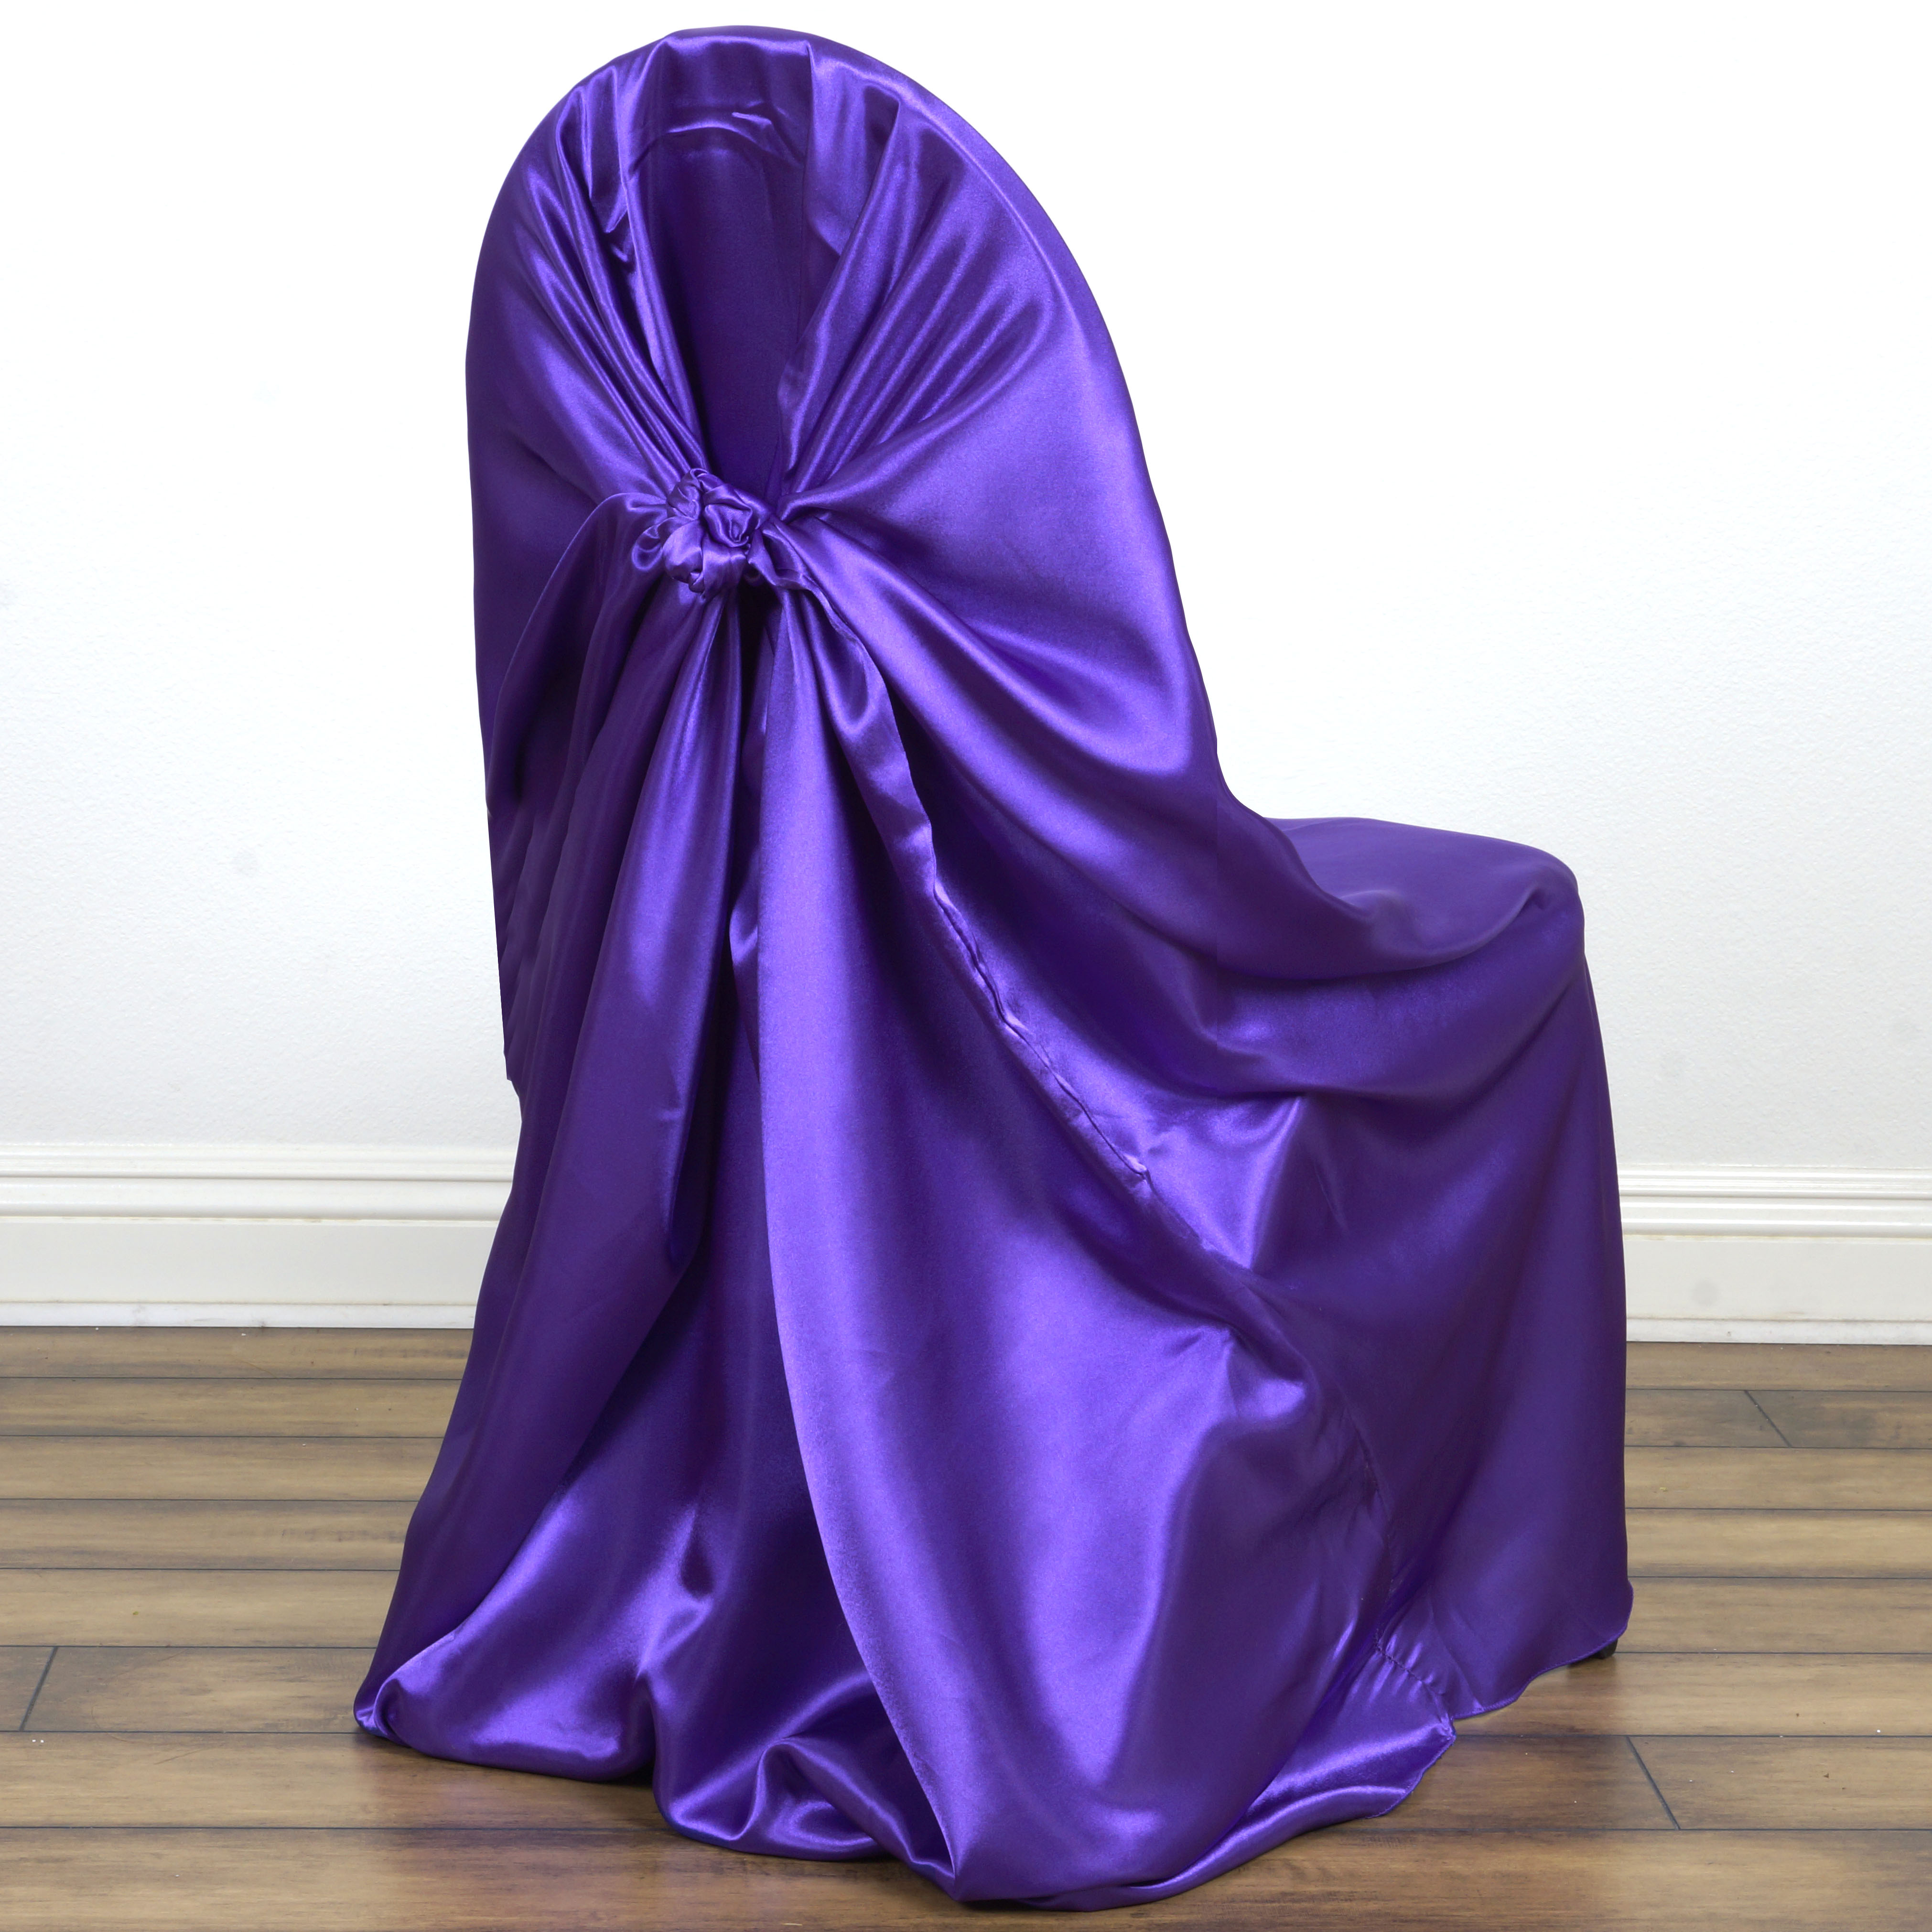 100 Universal Satin Self Tie For Any Kind Of Chair Cover